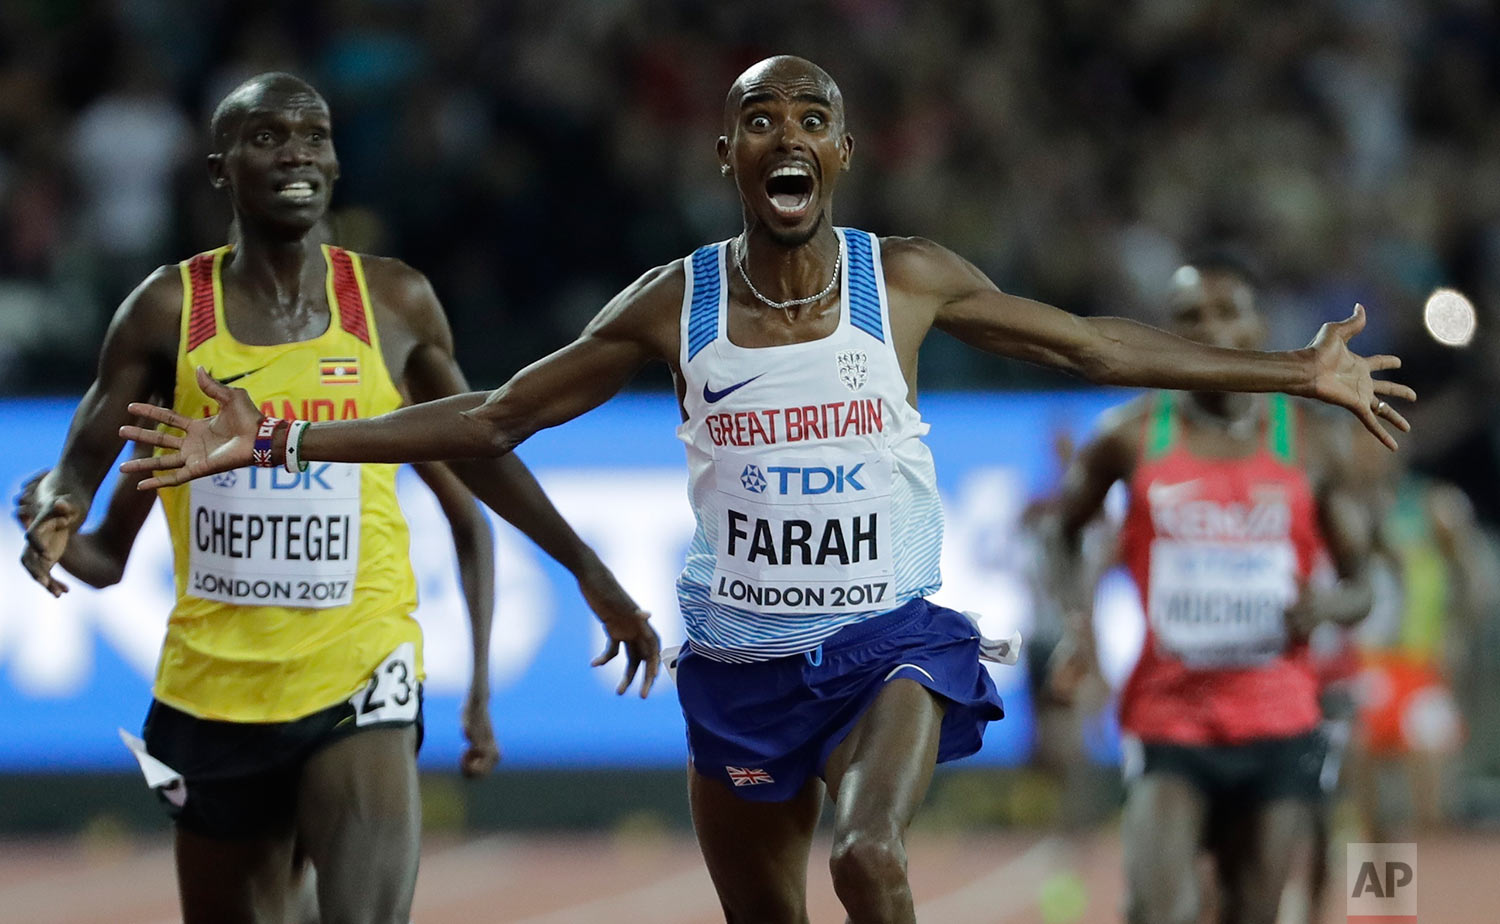 Britain's Mo Farah crosses the line ahead of Uganda's Joshua Kiprui Cheptegei to win the gold medal in the Men's 10,000m final during the World Athletics Championships in London, Friday, Aug. 4, 2017. (AP Photo/David J. Phillip)